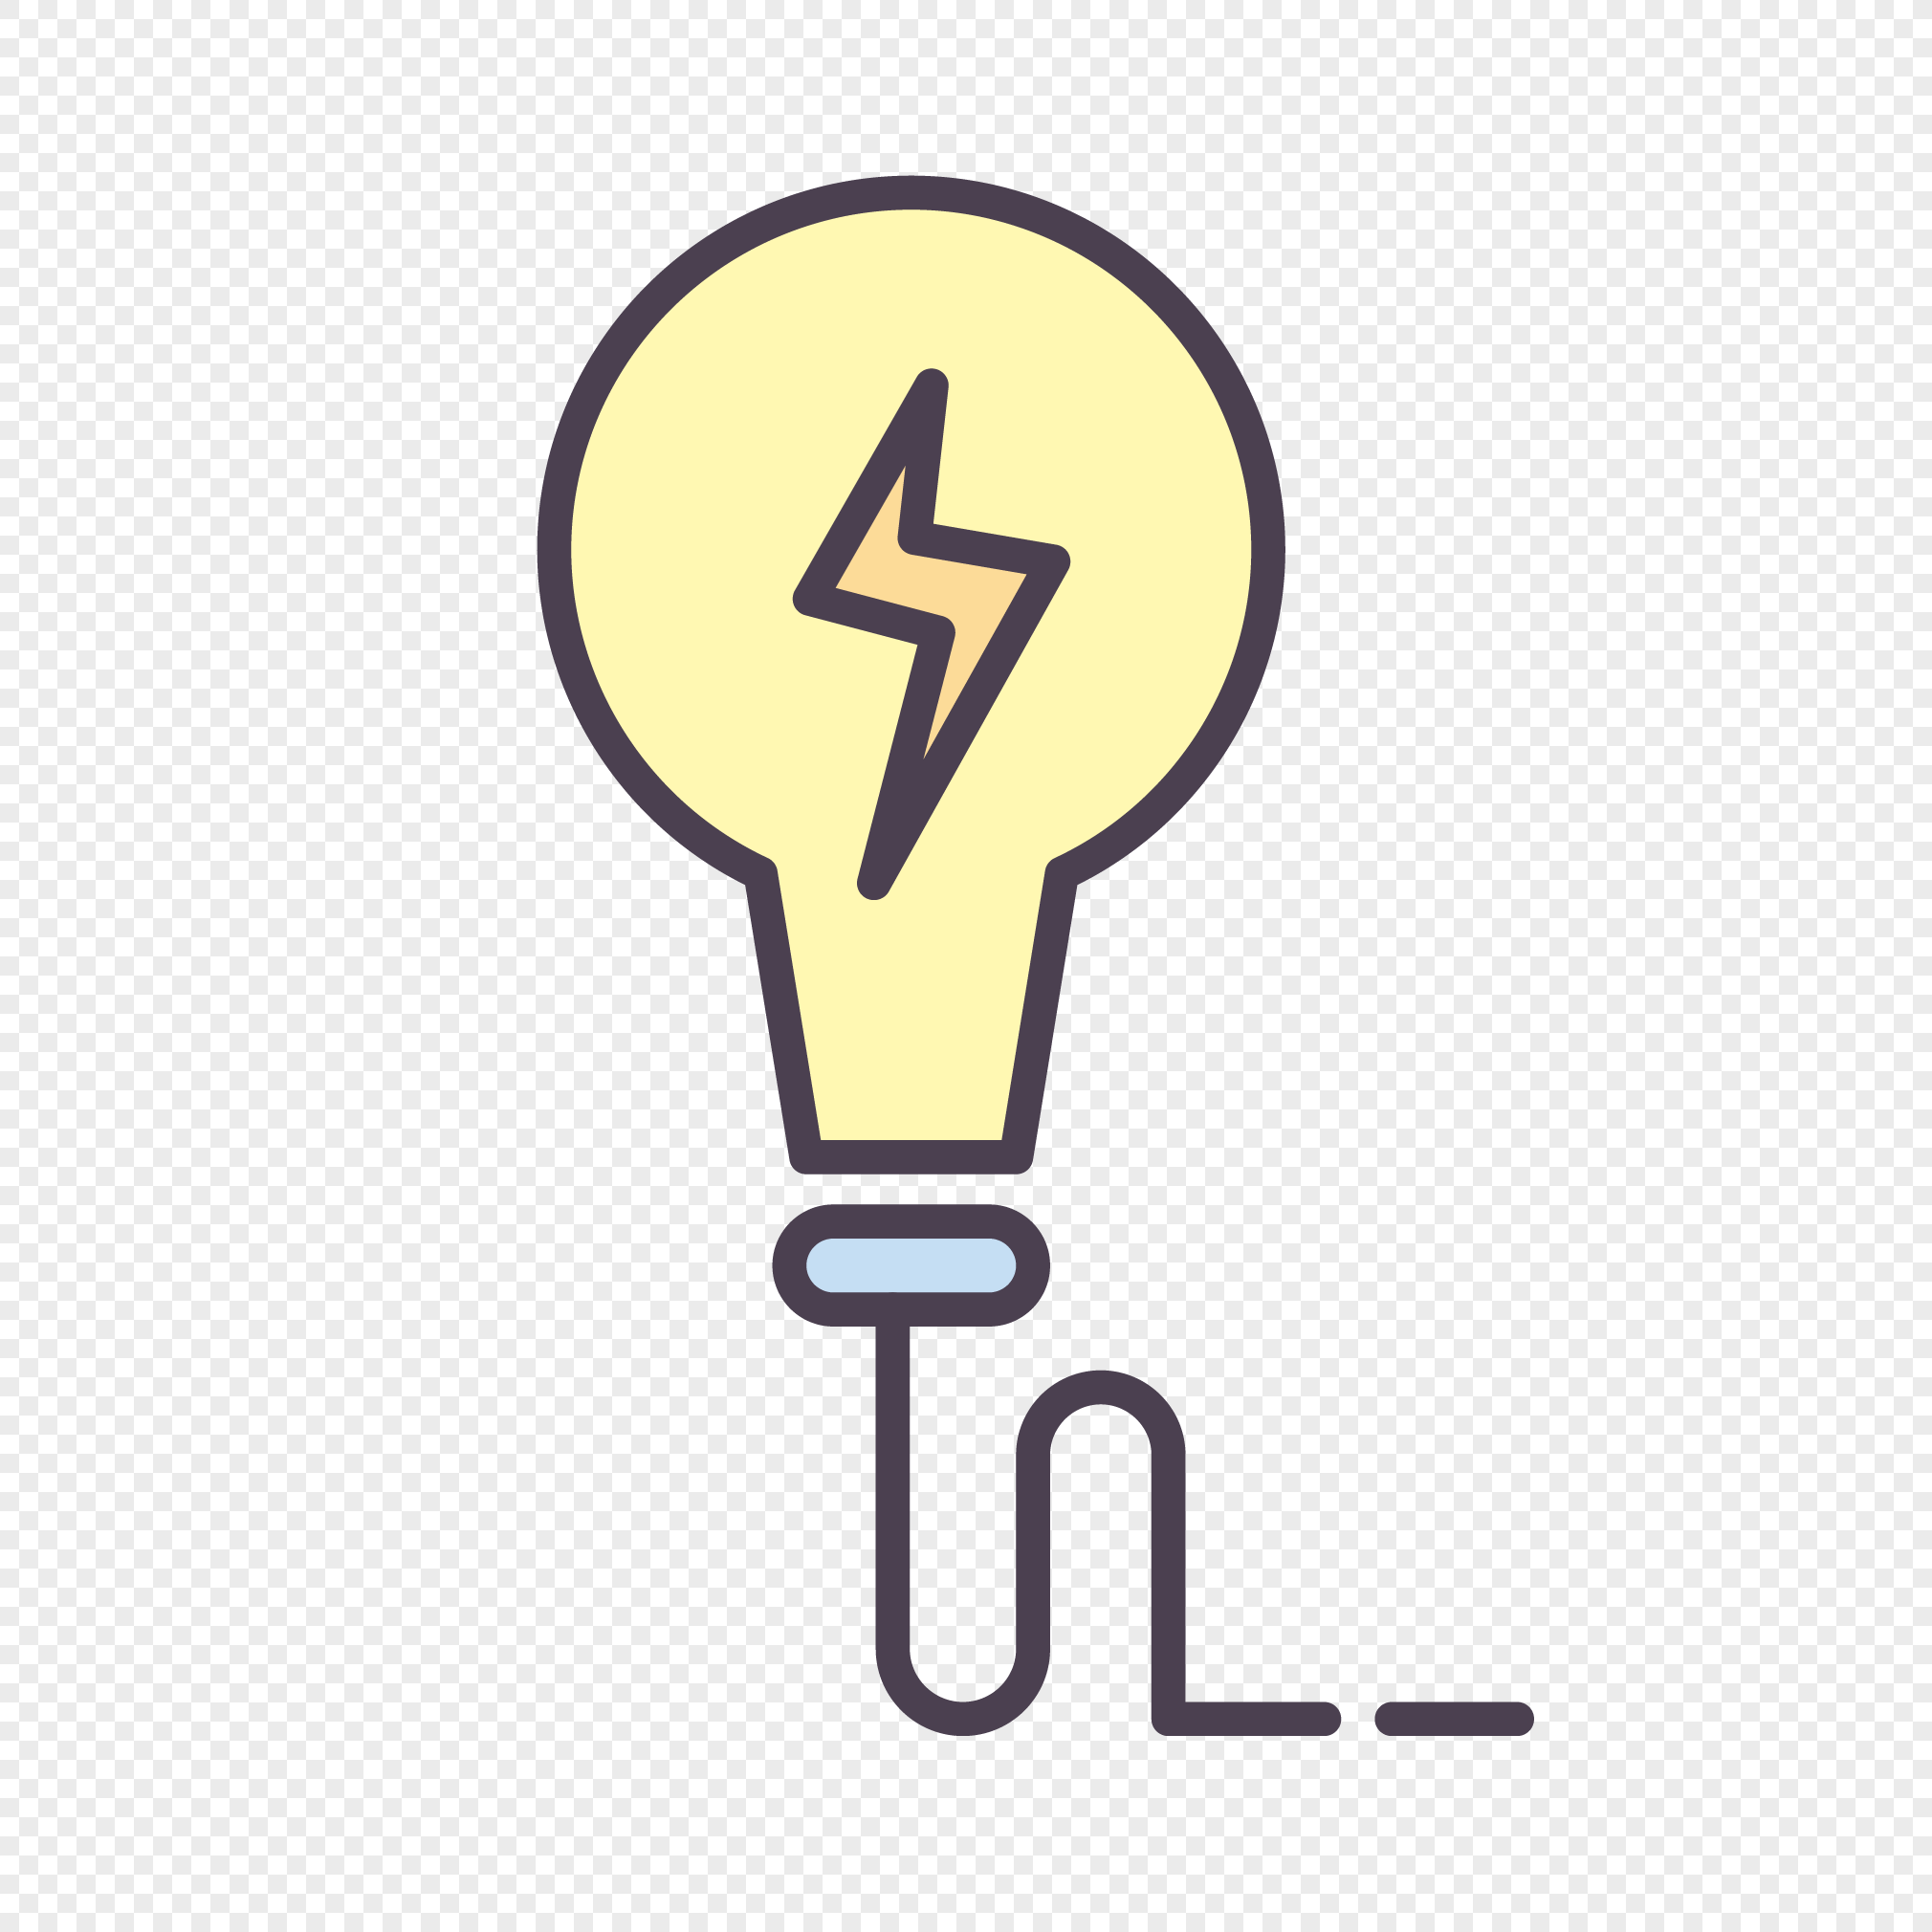 2020x2020 Bulb Vector Png Image Picture Free Download 400308744